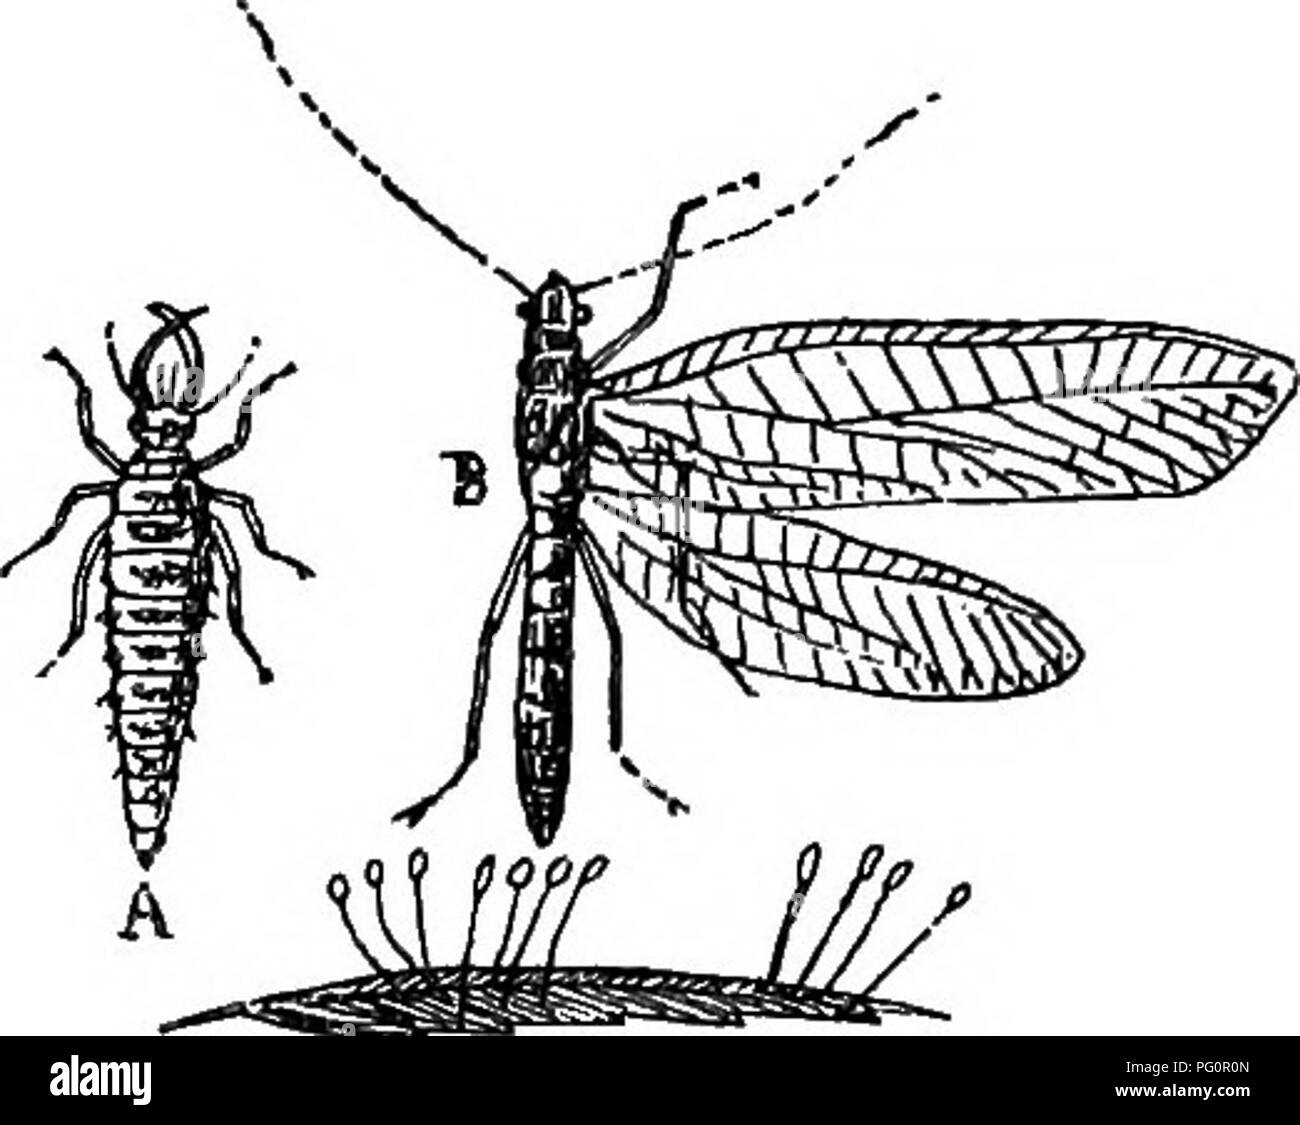 """. A text-book of agricultural zoology. Zoology, Economic. LACE-WING FLIES. 257 malia (Trichodecies) have three-jointed antennsB. These must not be confounded with the piercing-mouthed lice {Hcemato- pinus). Prevention and Treatment.—AH fowls should have """"dust- baths,"""" so that they can rid themselves of these pests. Eoad dust and lime or gypsum and a little paraffin make as good a mixture as any. All brood-hens should be dressed around the rump and under the wings with mercurial ointment before being set, and young chicks should be similarly dressed up the neck to kiU the tick-like sp - Stock Image"""